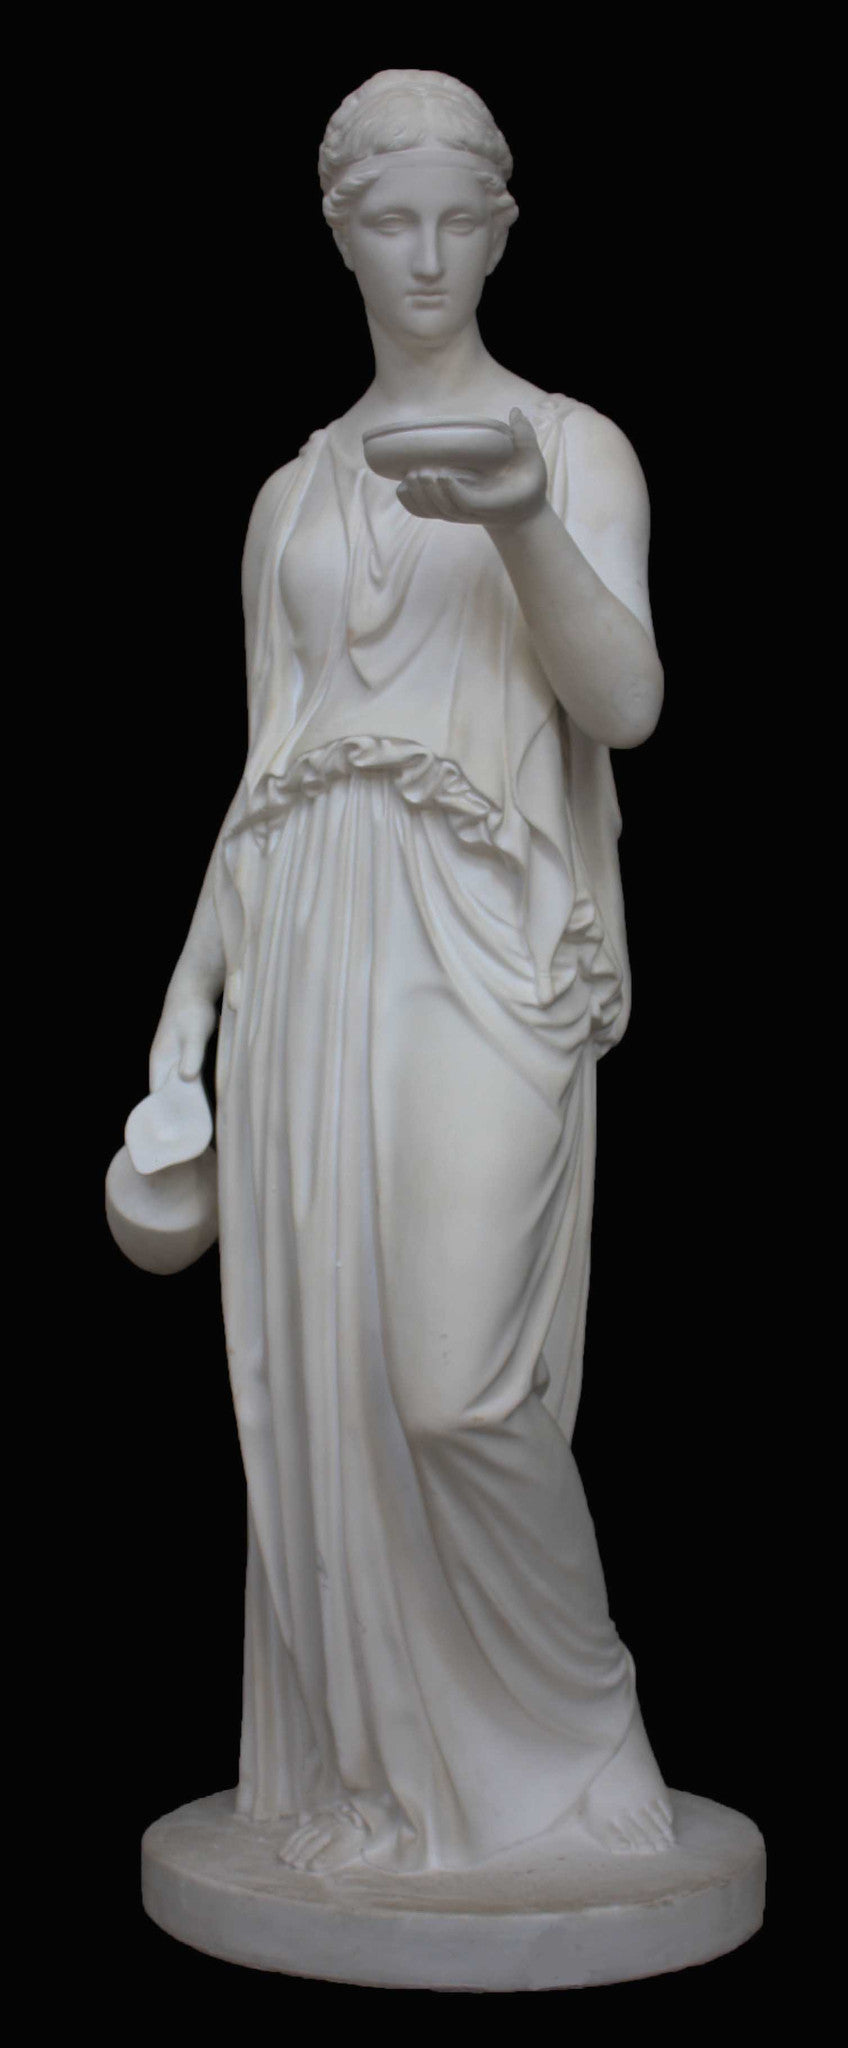 photo with black background of plaster cast sculpture of goddess Hebe in robes standing and holding a jug in right hand at her side and a bowl in left hand raised in front of her